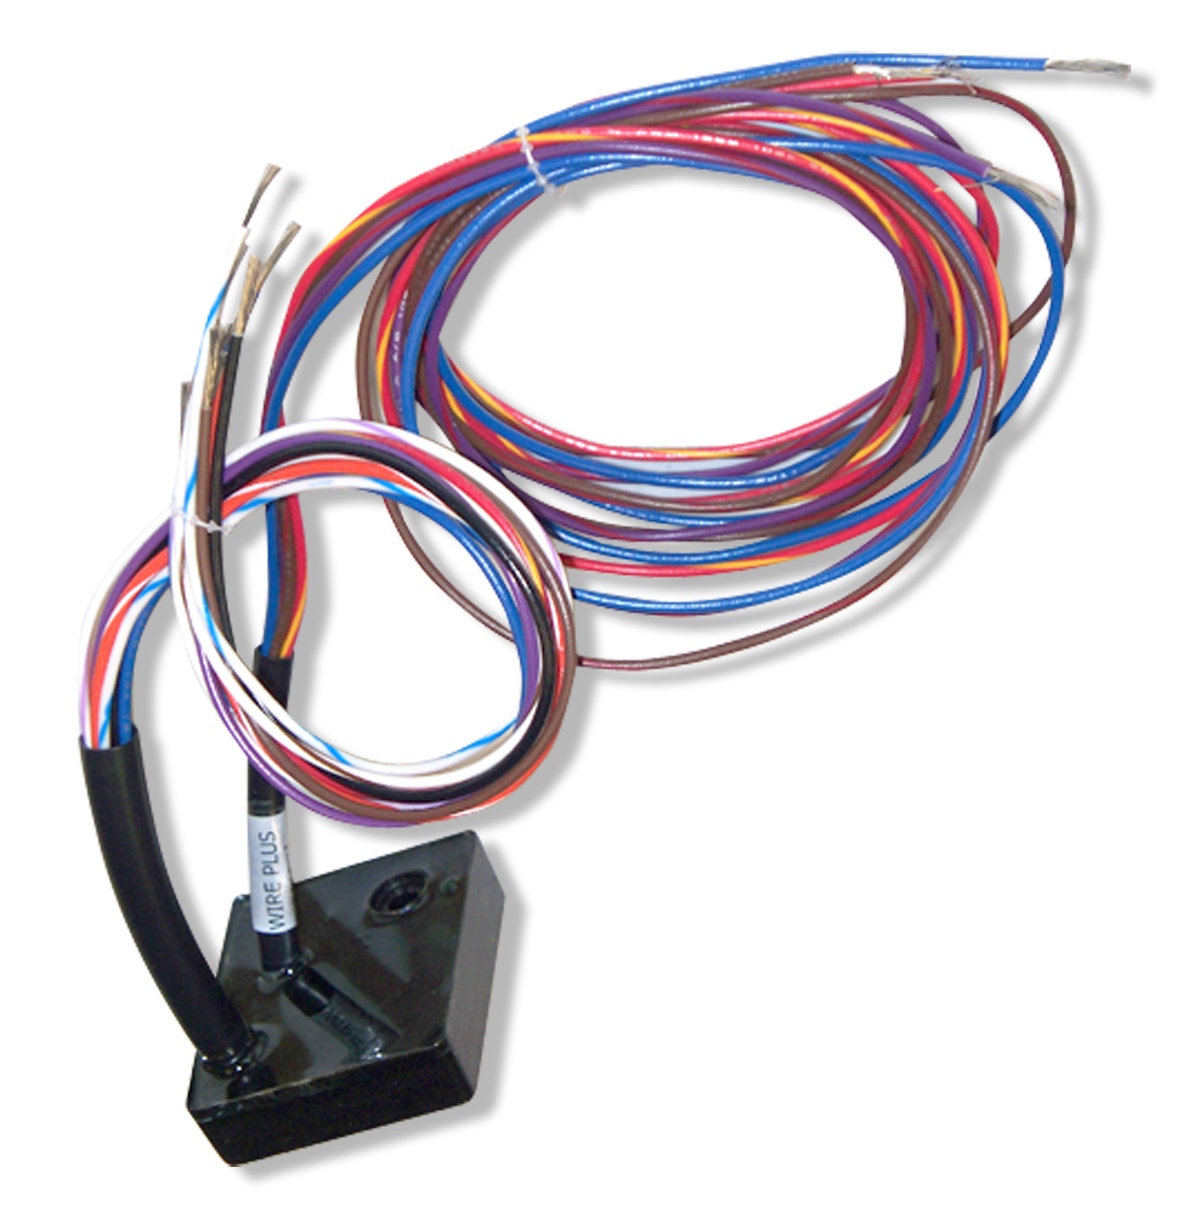 Wiring Harness For Custom Motorcycle : Wire plus introduces power lighting control modules and